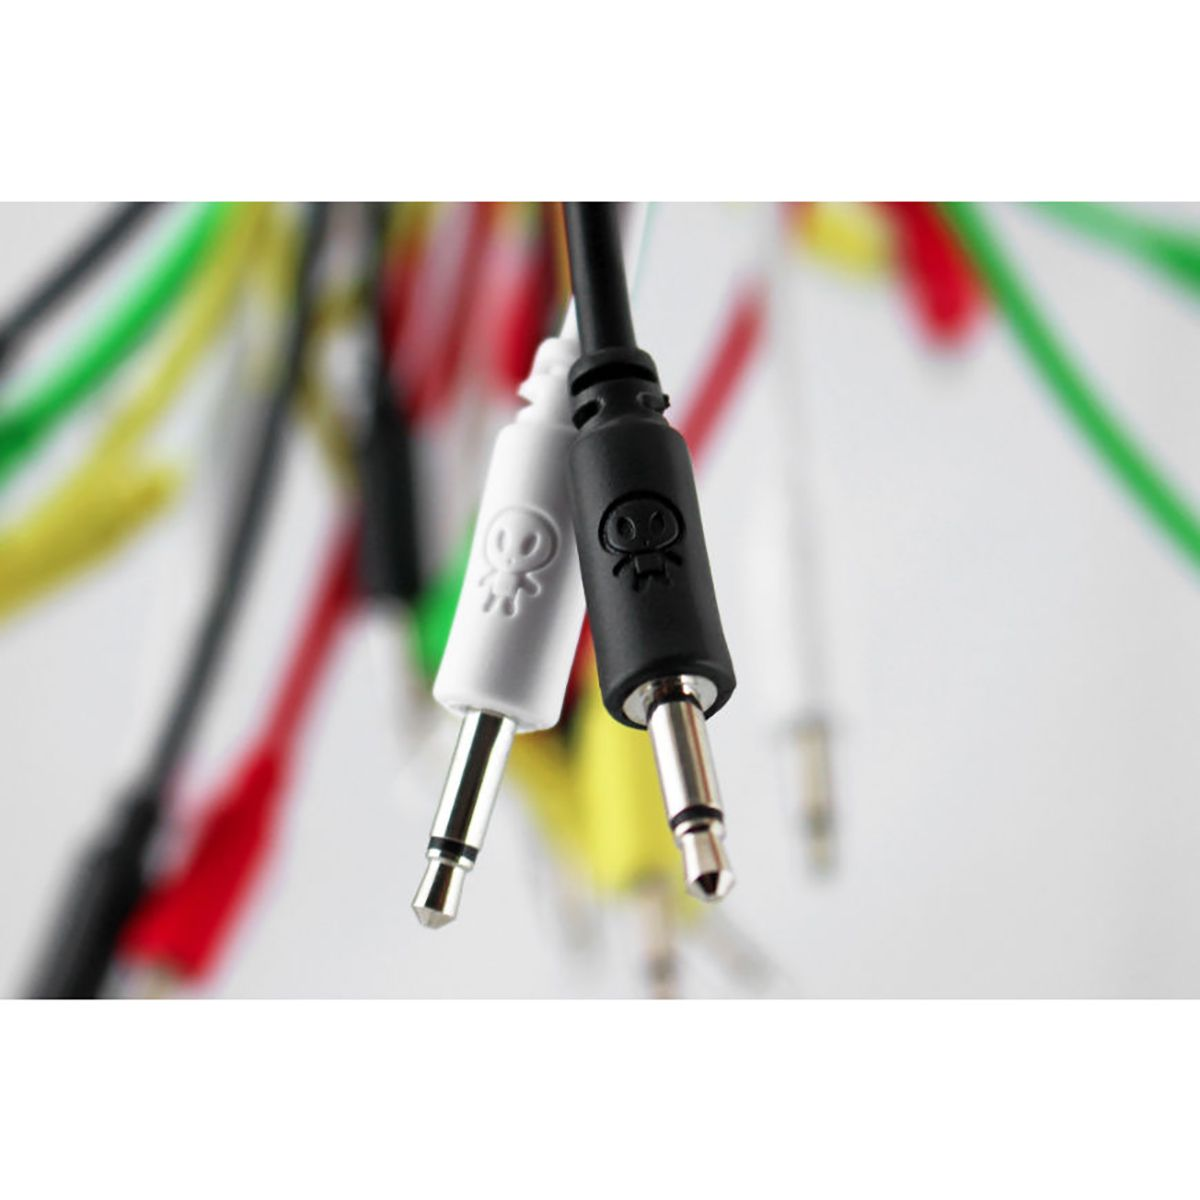 Erica Synths Eurorack Patch Cables 5 Pack (10cm White)